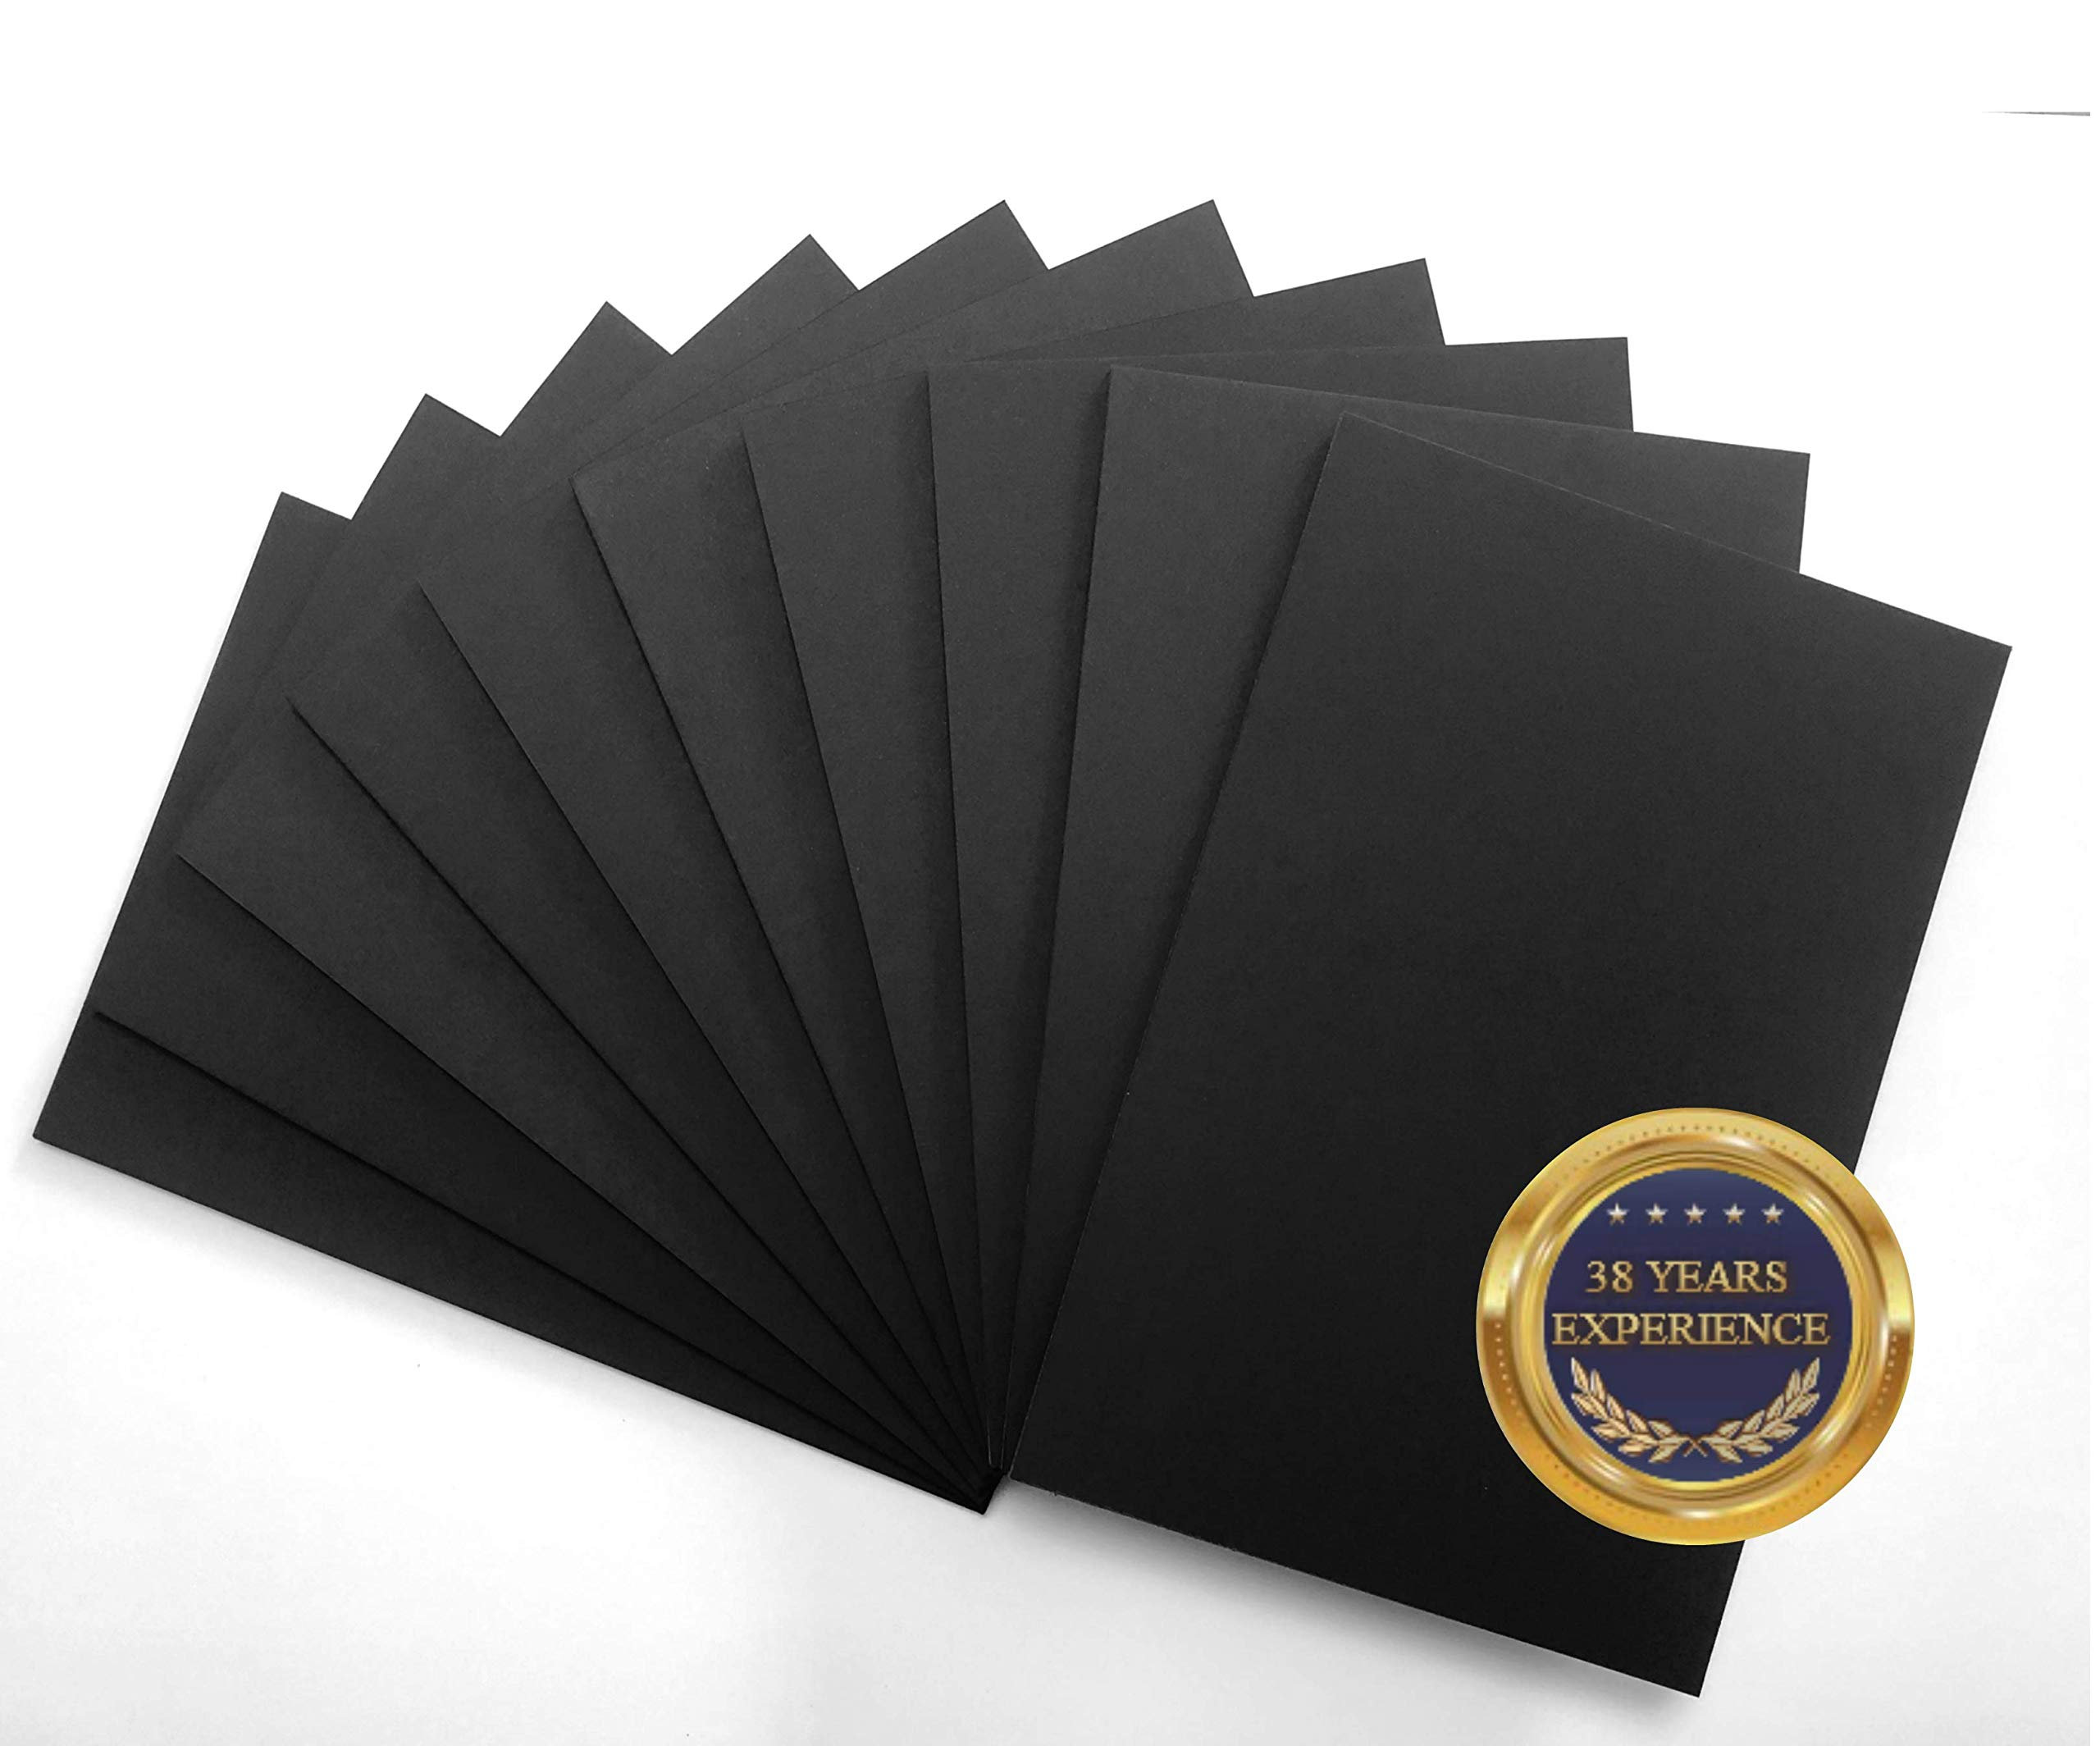 NODITO Premium Foam Board Black 20 x 30 x 3/16'' 10-Pack : Matte Finish High-Density Professional Use, Perfect for Presentations, Signboards, Arts and Crafts, Framing, Display (Black, 20x30) by NODITO